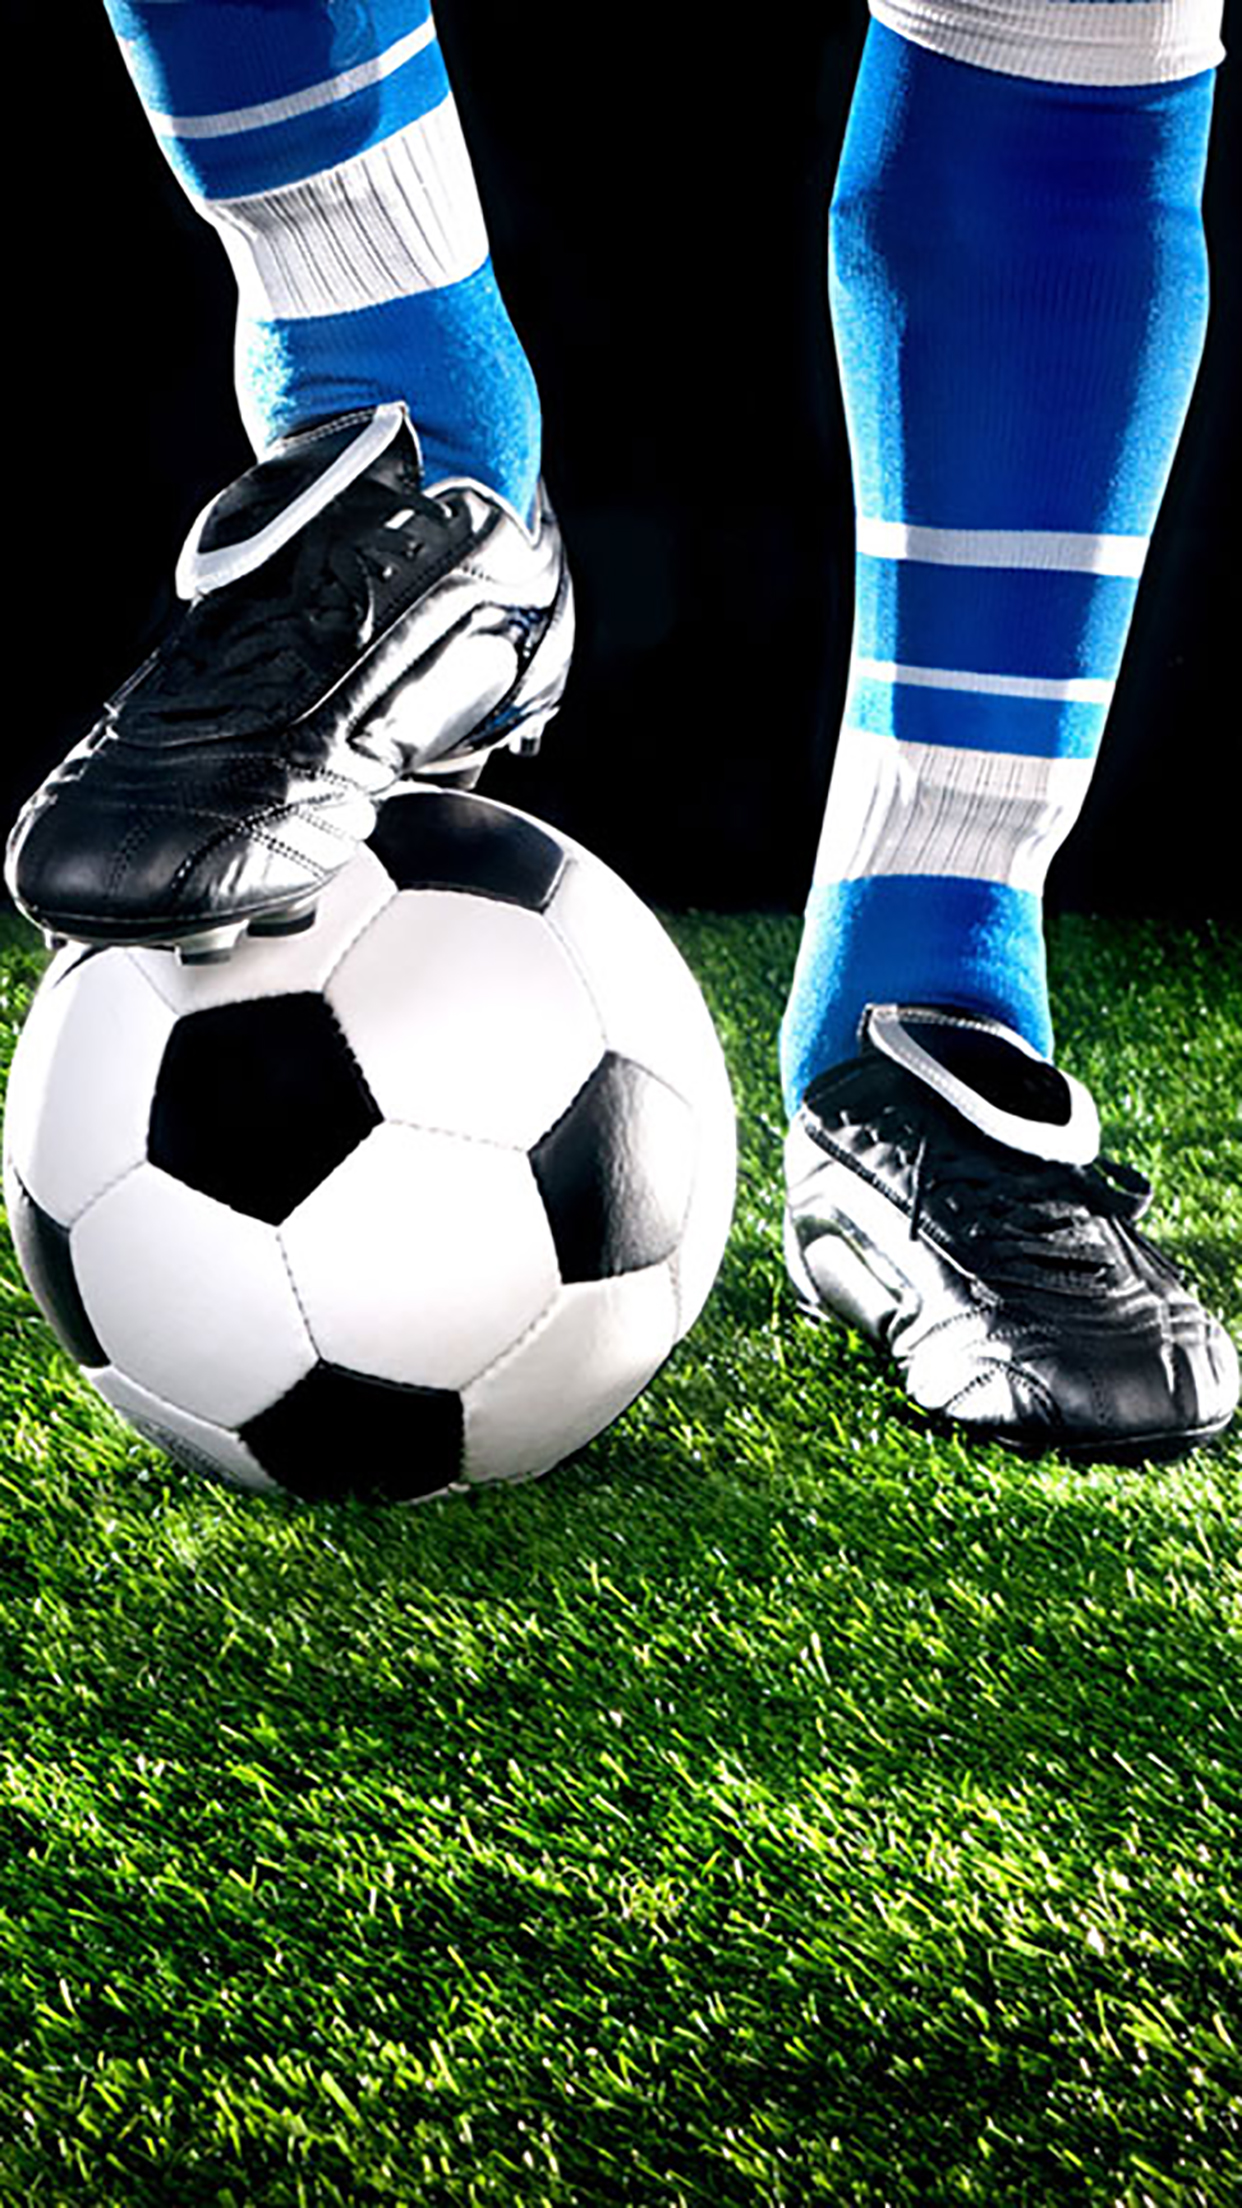 Soccer Ball Feet On Wallpaper For Iphone 11 Pro Max X